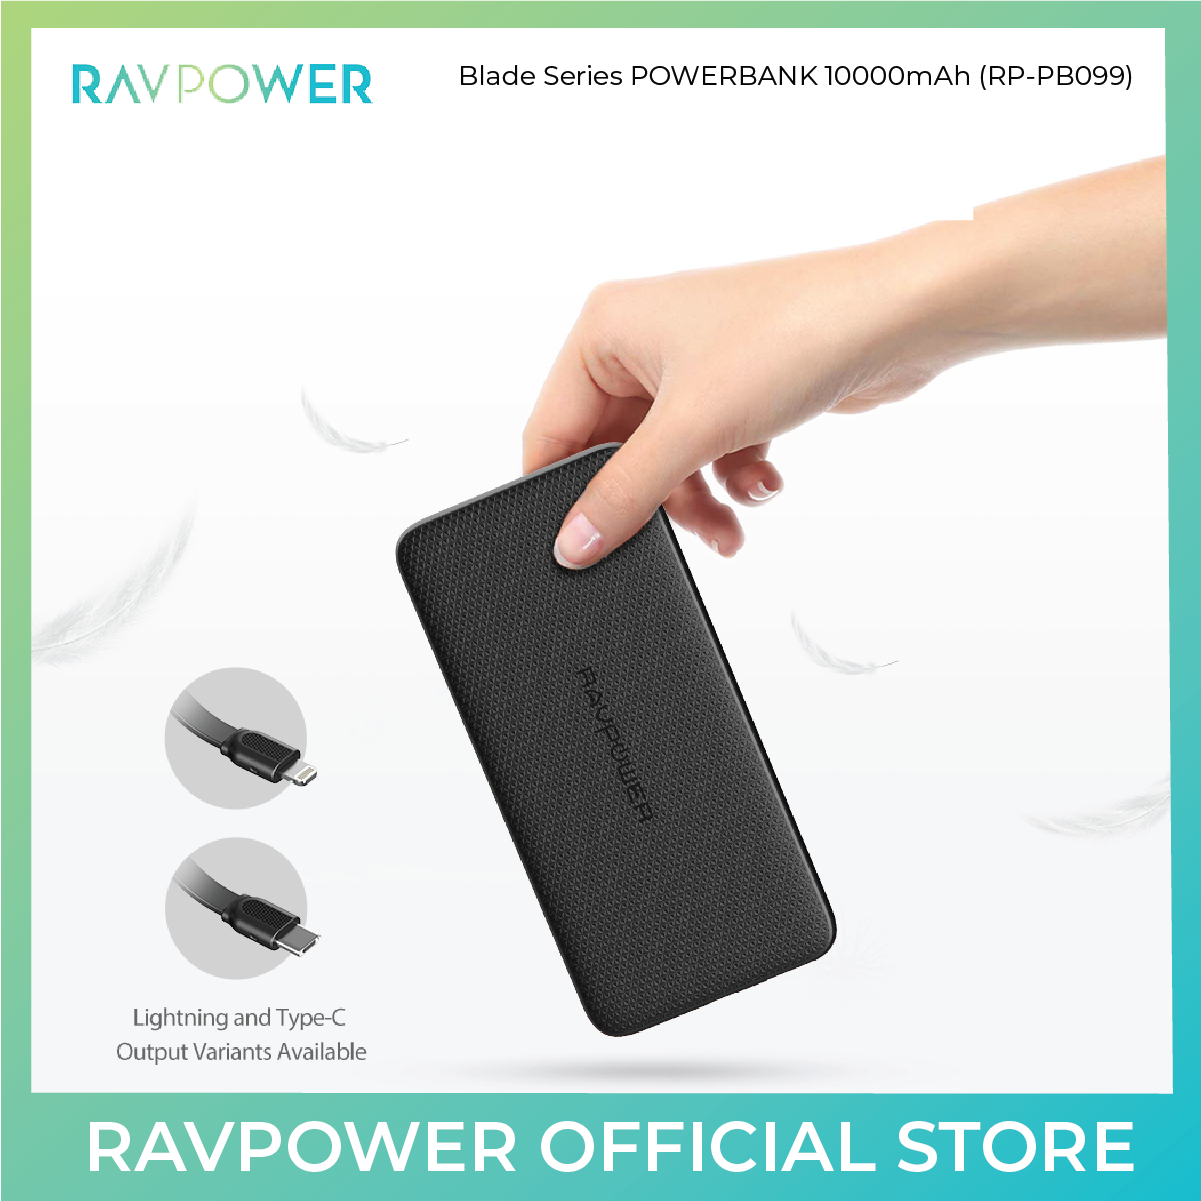 RAVPower Blade Series Portable Charger with Built-in-Cable (RP-PB099) - 10000mAh